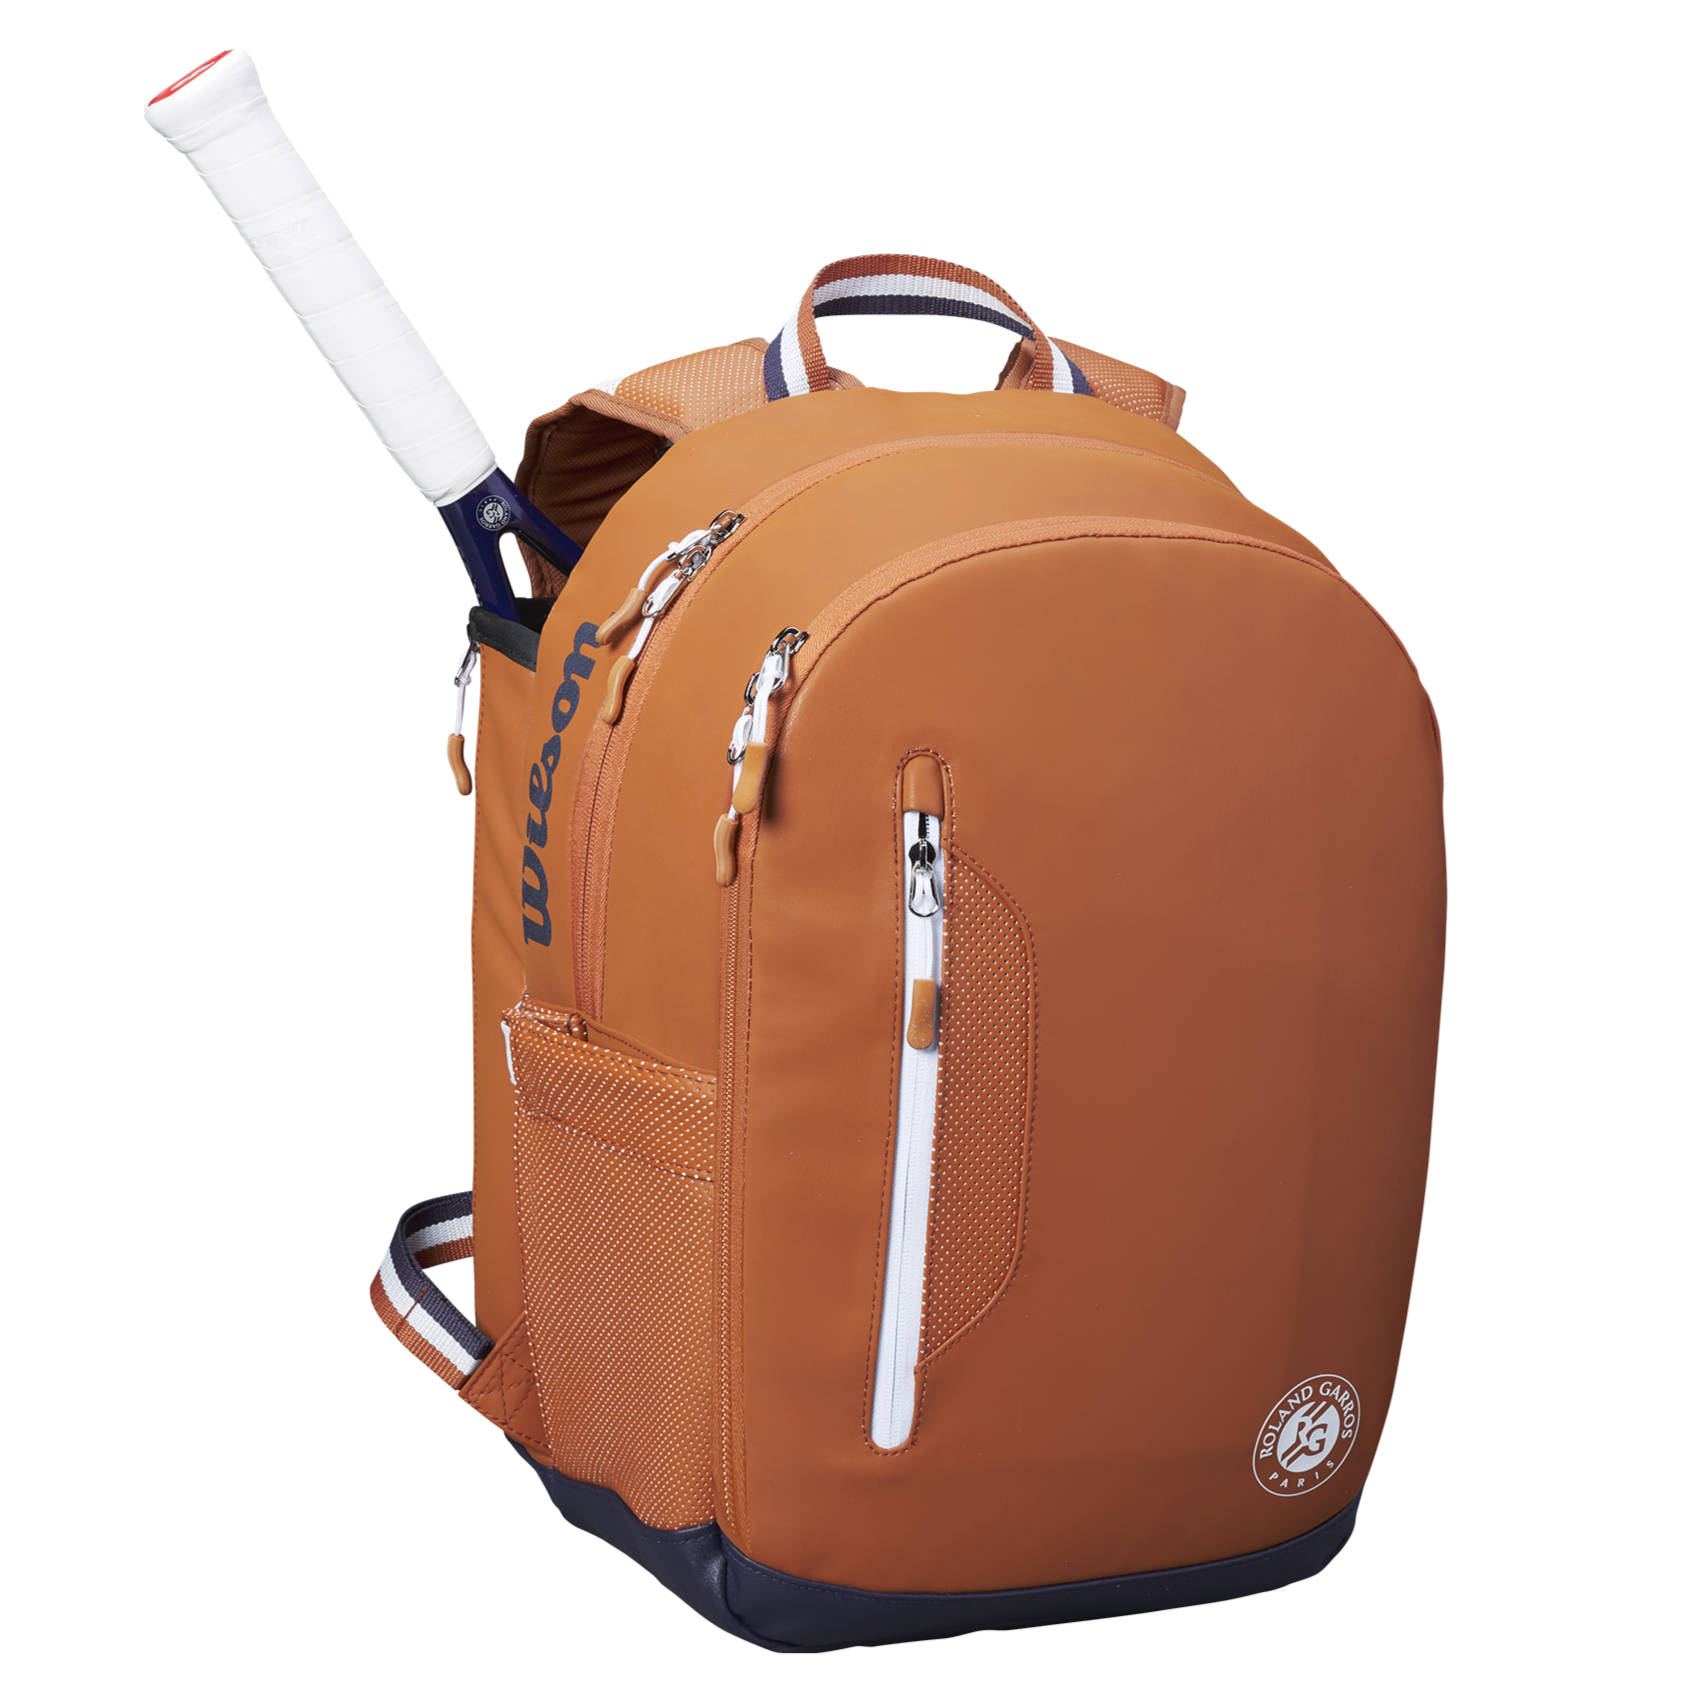 Wilson Roland Garros Tour Backpack - Brown